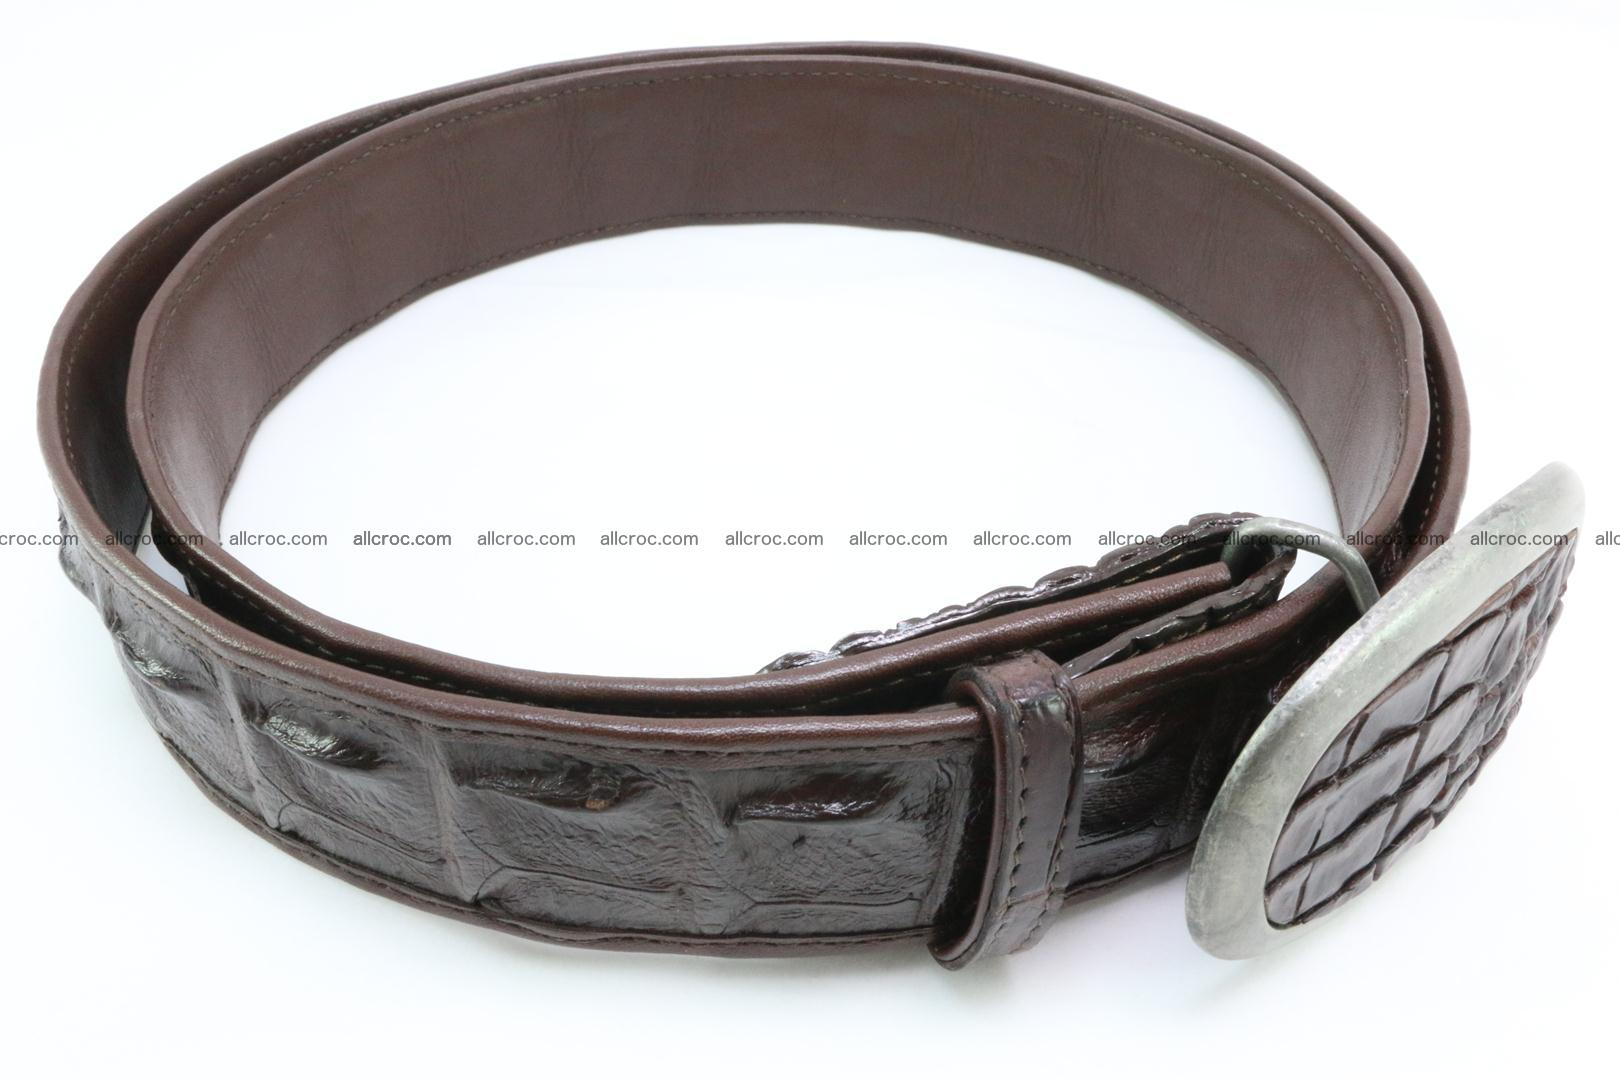 Genuine crocodile leather hornback belt 082 Foto 2